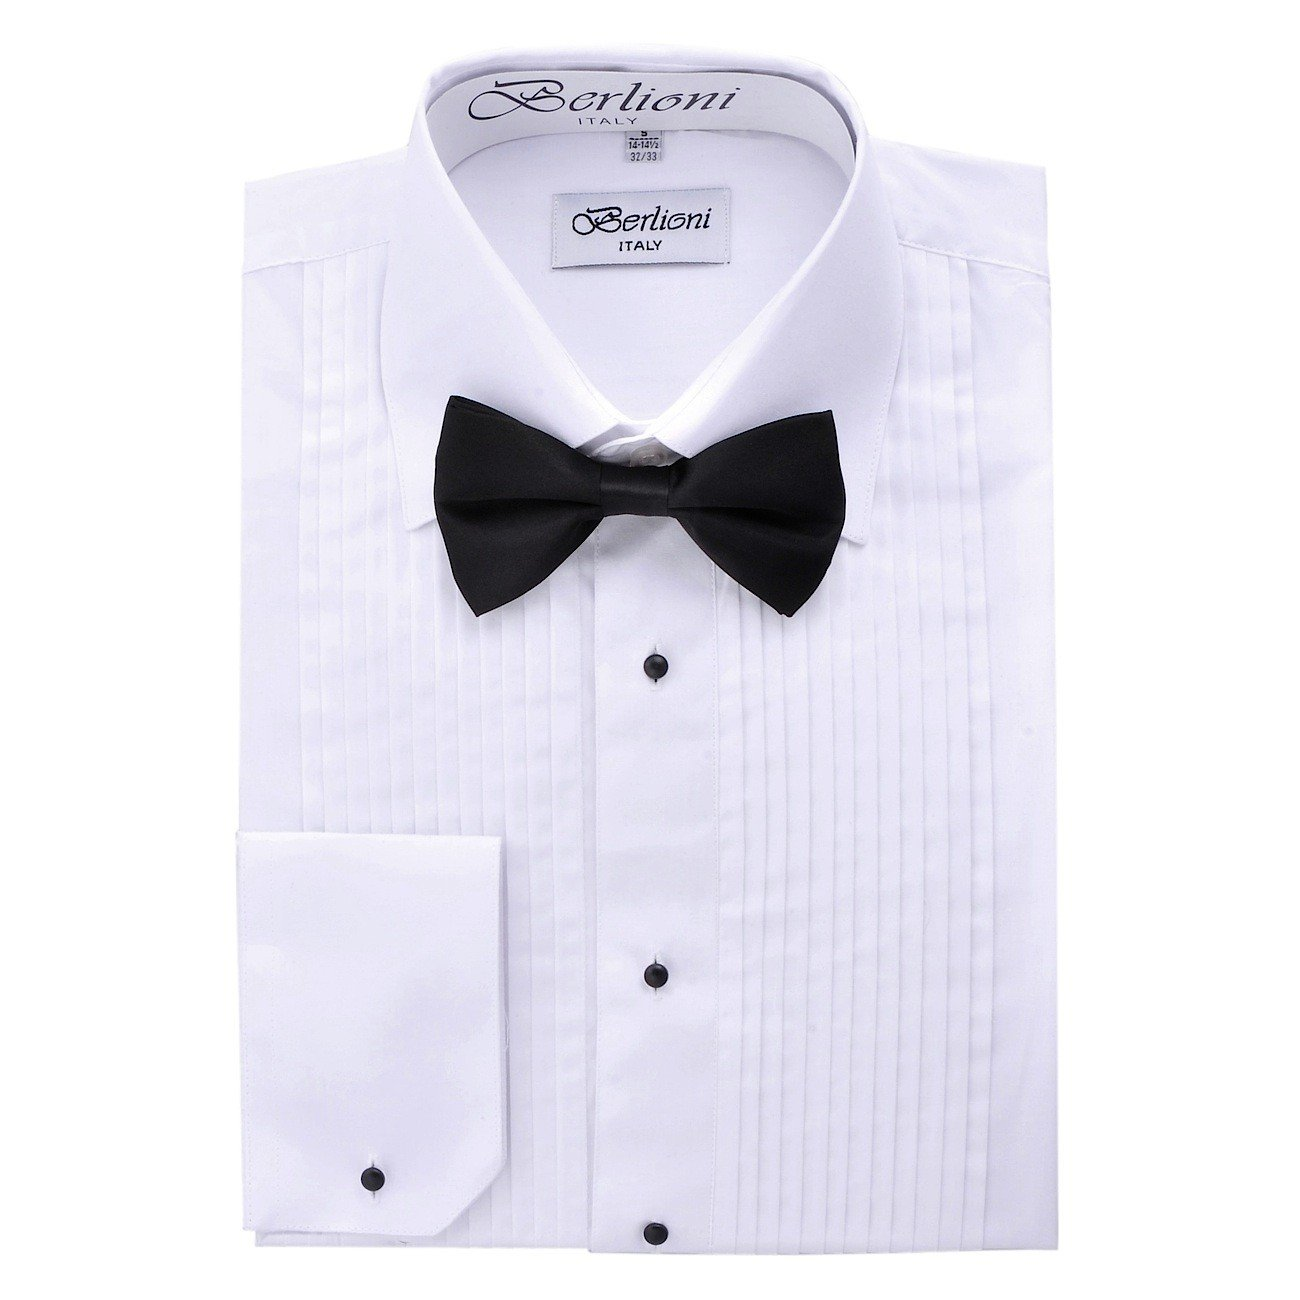 Berlioni Men's Plain Collar Tuxedo Shirt